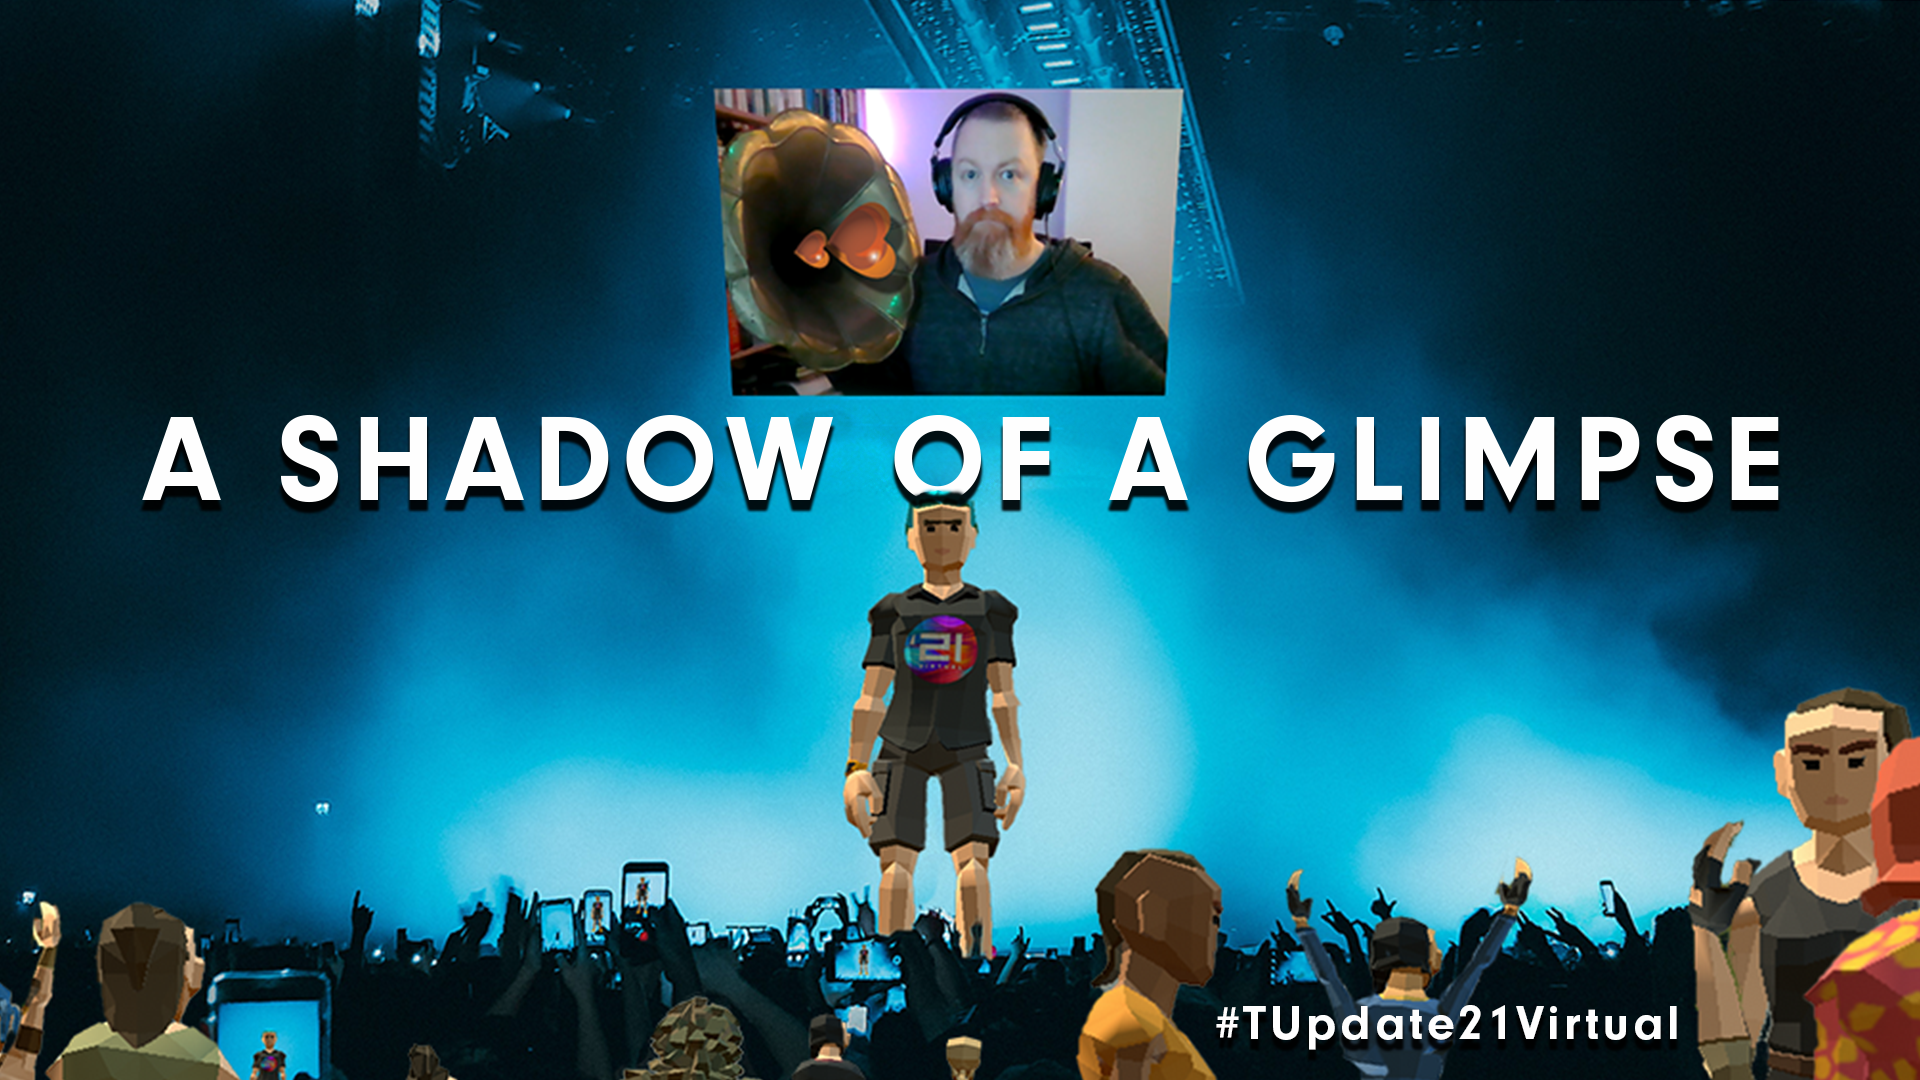 A Shadow of a Glimpse - a reacp of the T-Update 21 Virtual Conference